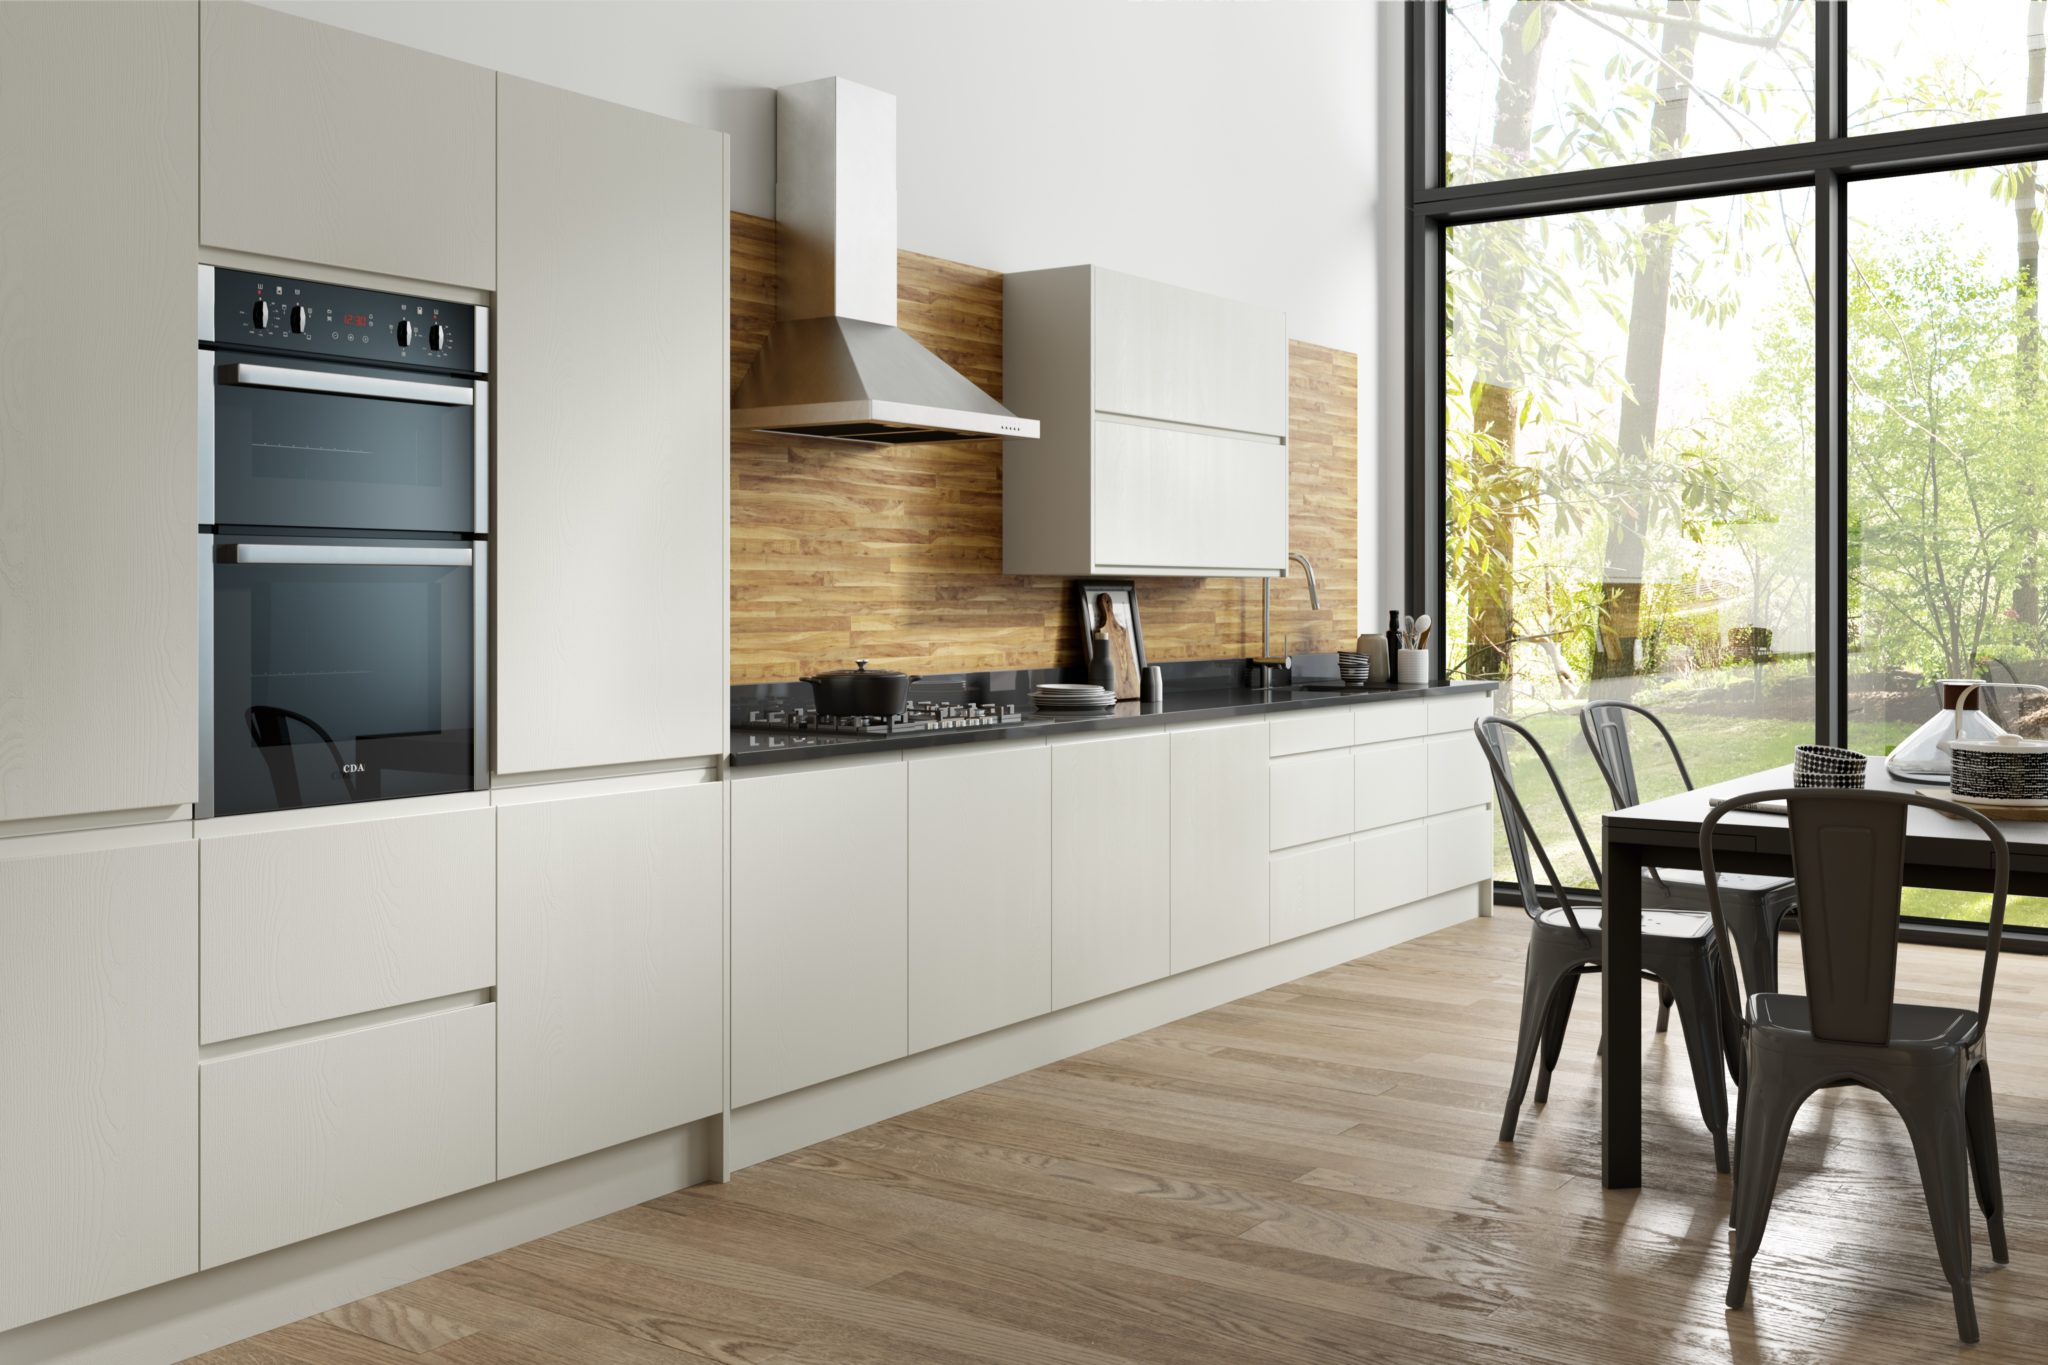 Made to Measure Kitchens - Kitchen Door Replacement - Bespoke ...